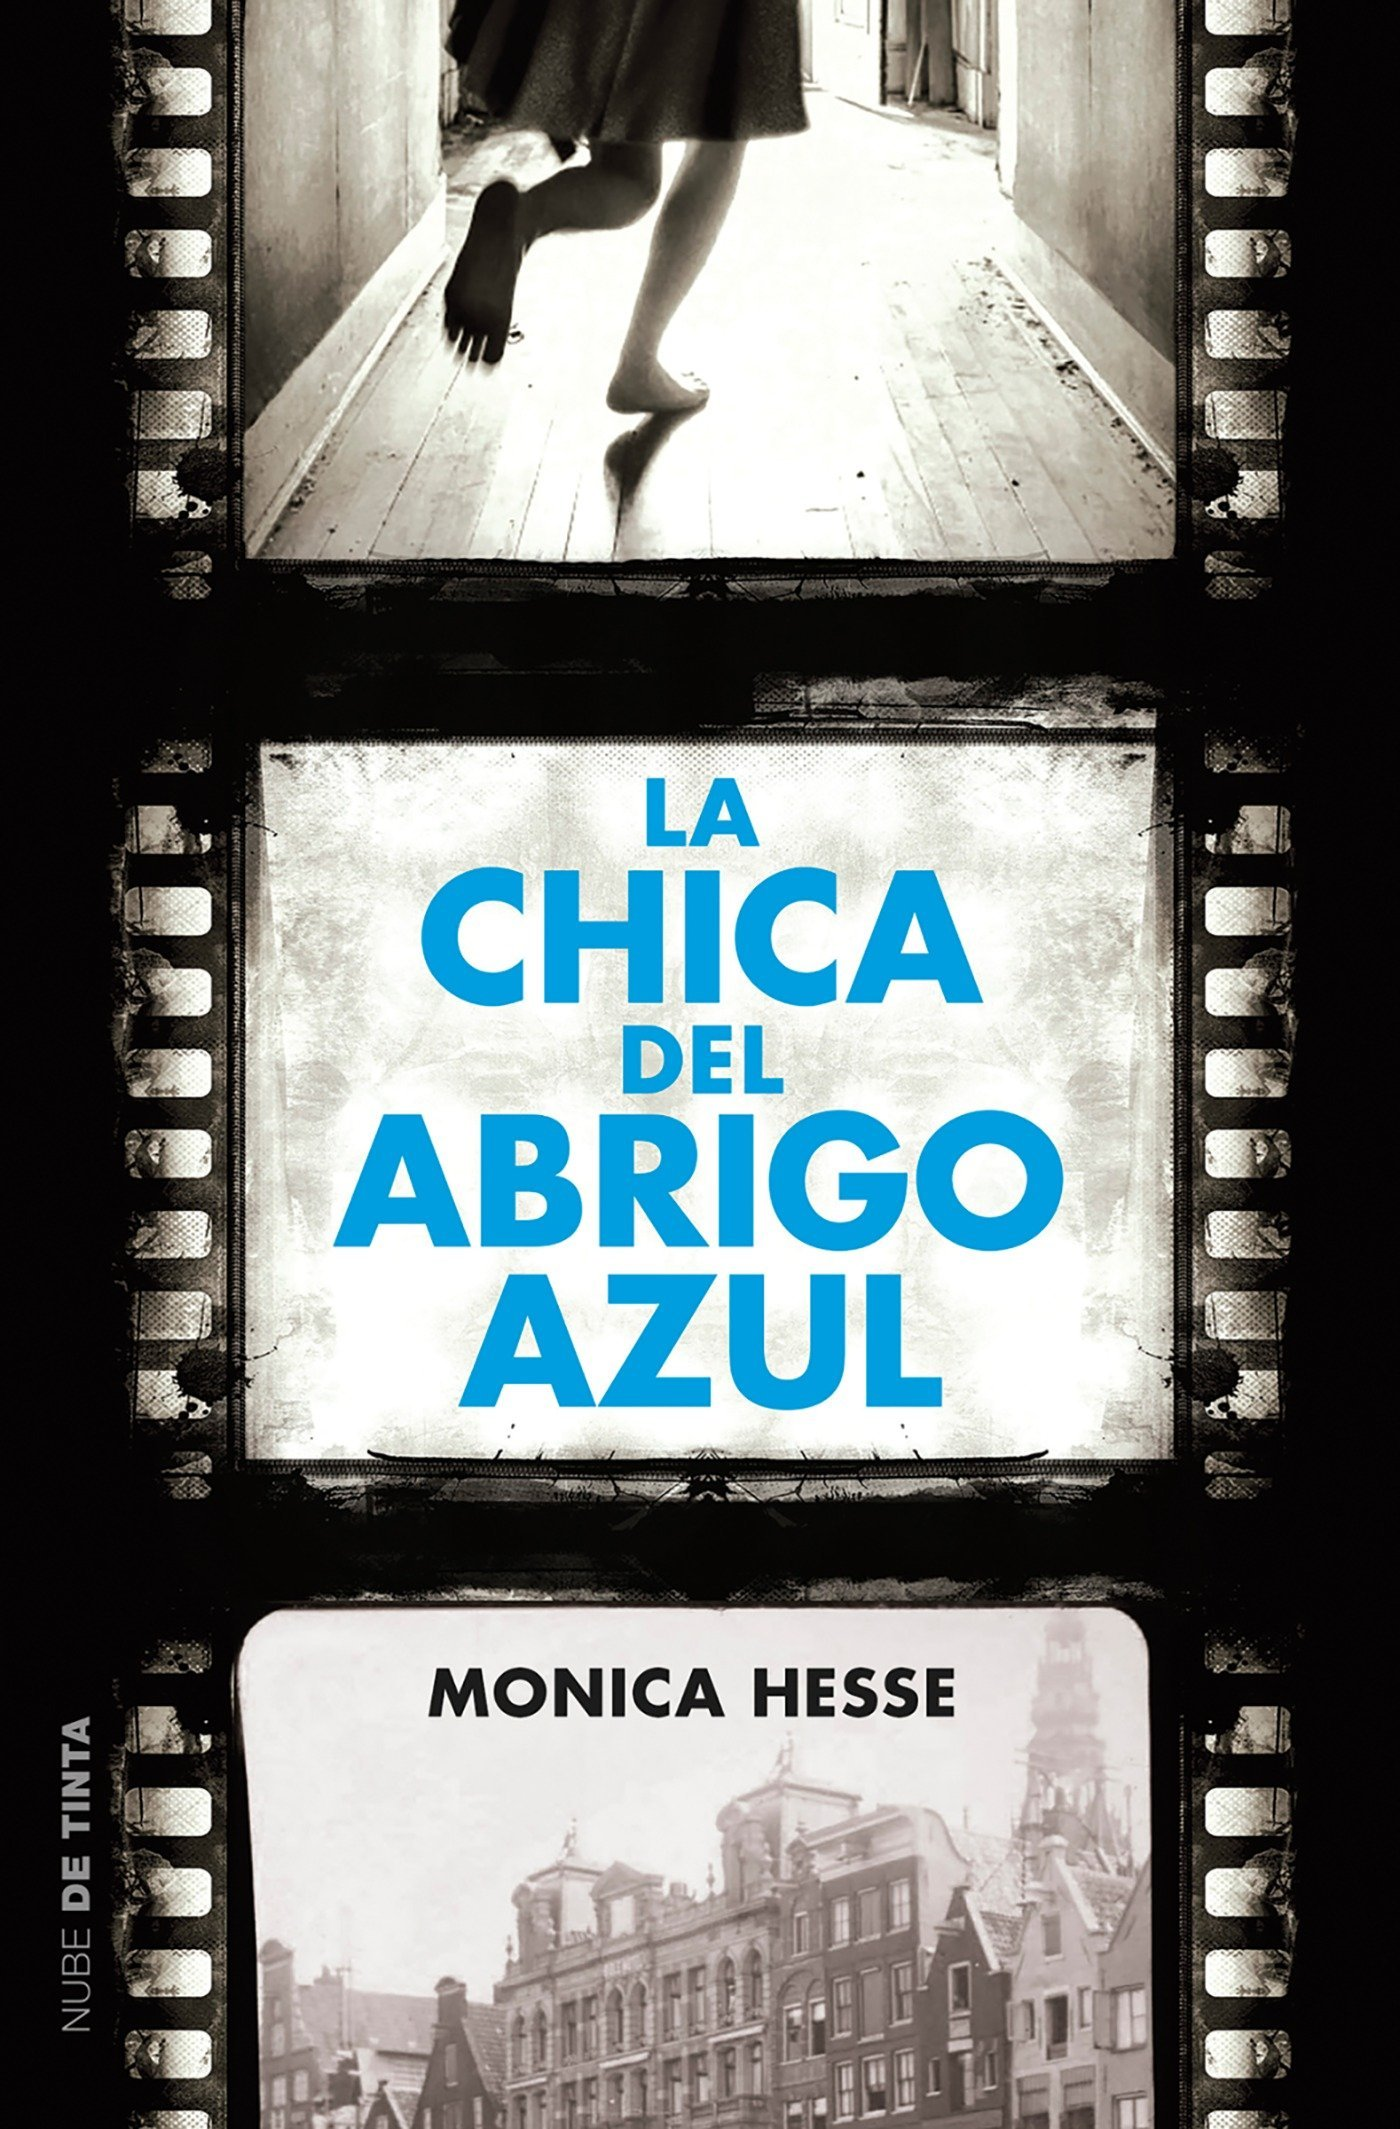 Amazon.com: La chica del abrigo azul / Girl in the Blue Coat (Spanish Edition) (9788415594970): Monica Hesse: Books